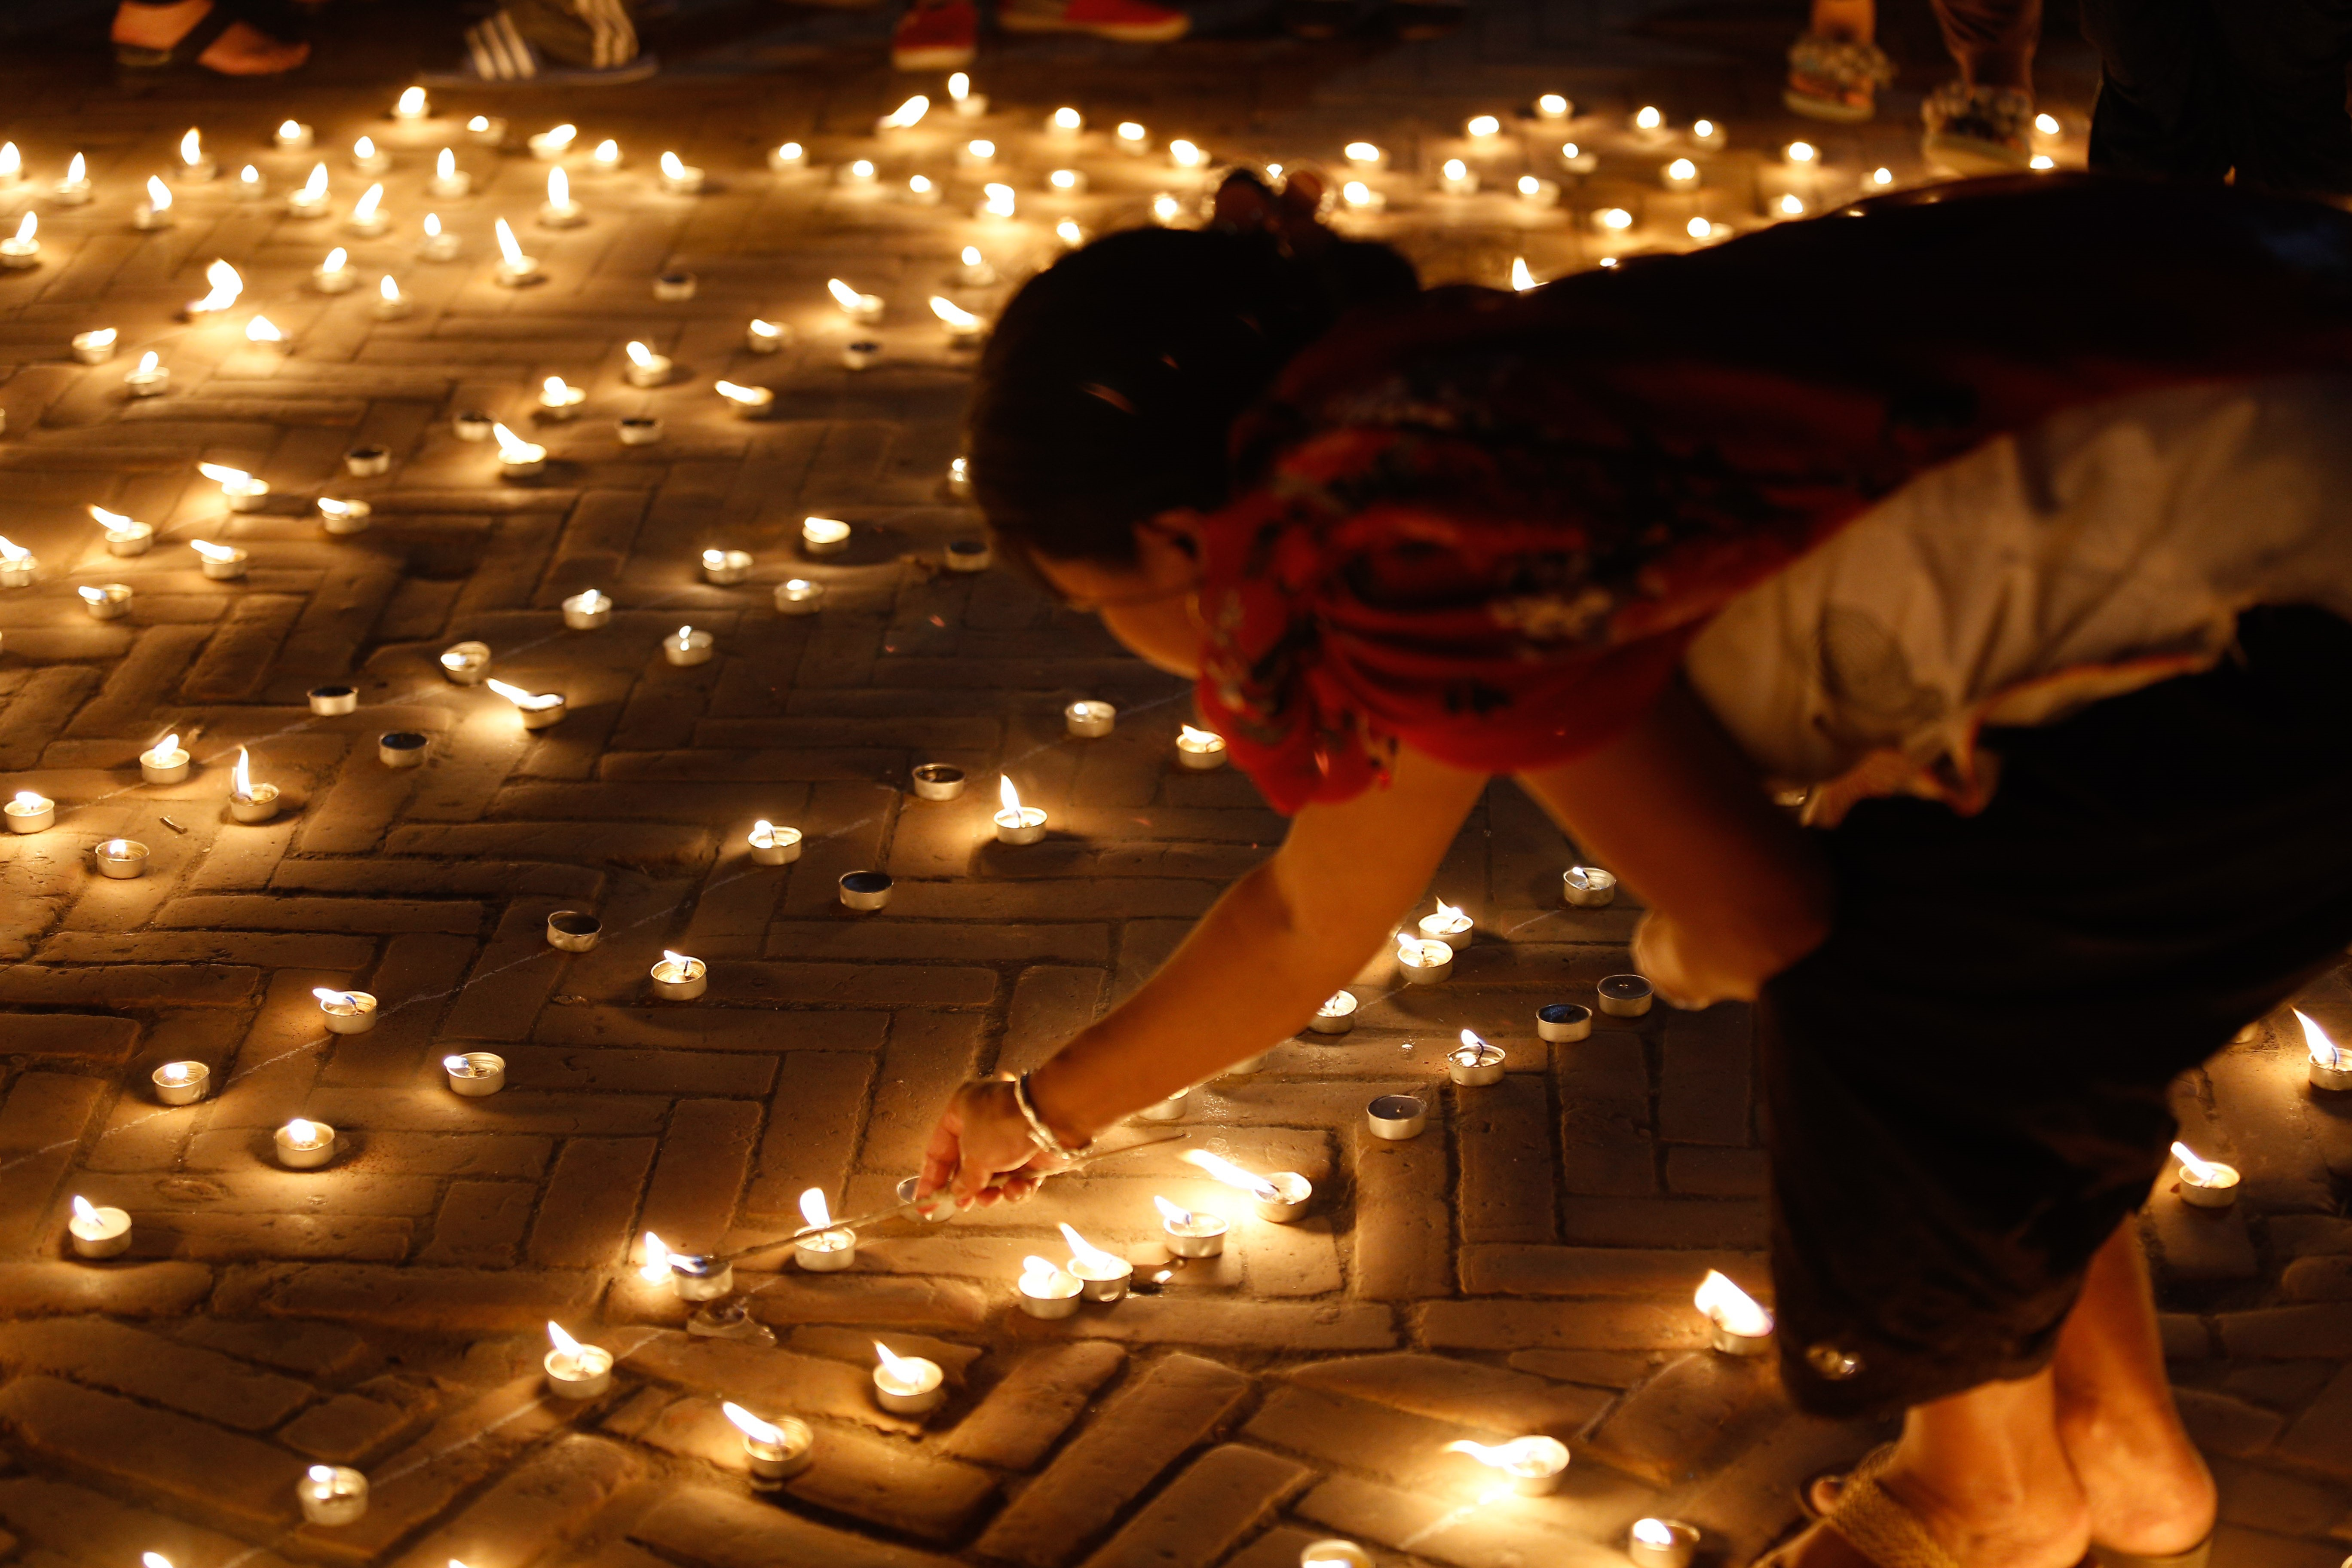 Nepalese woman lights a candle to pay homage to earthquake victims as they mark the 1st anniversary in Kathmandu, Nepal on April 24, 2016.